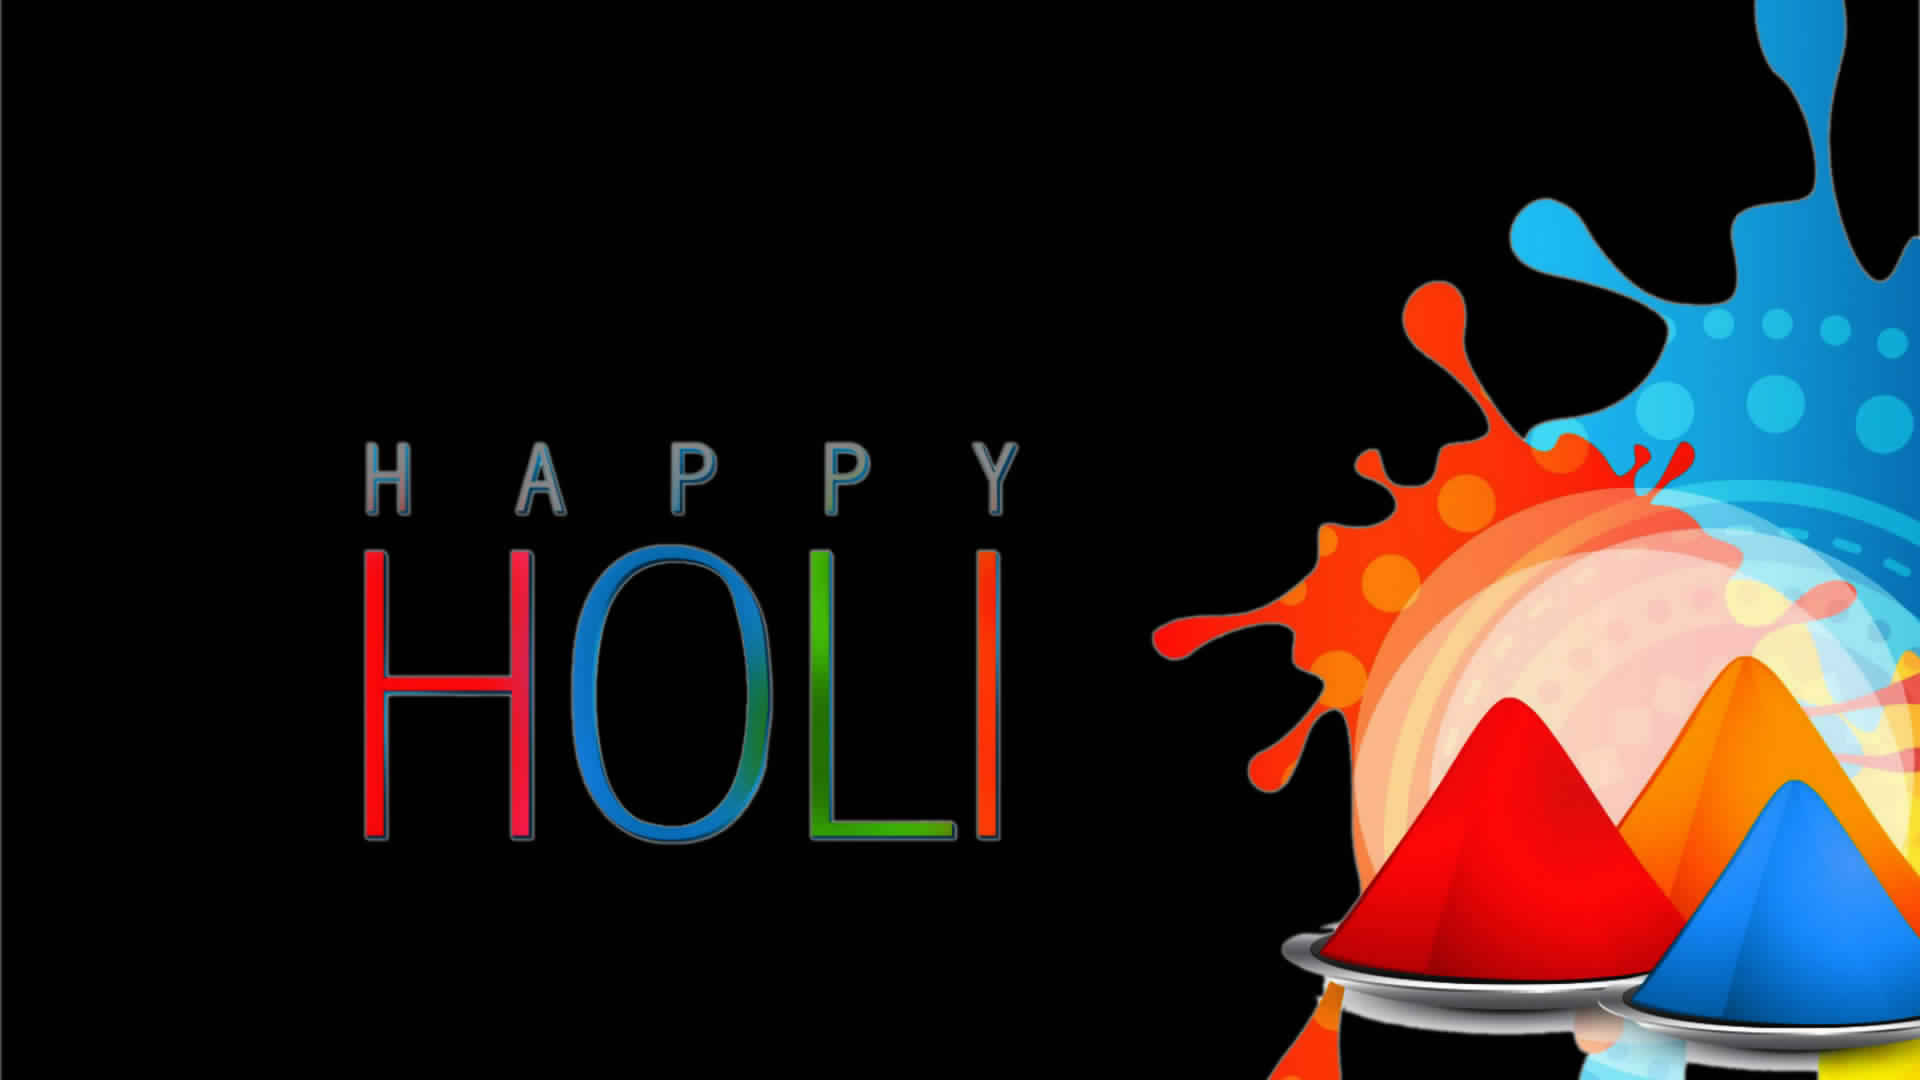 Happy Holi High Resolution 1080p Wallpapers